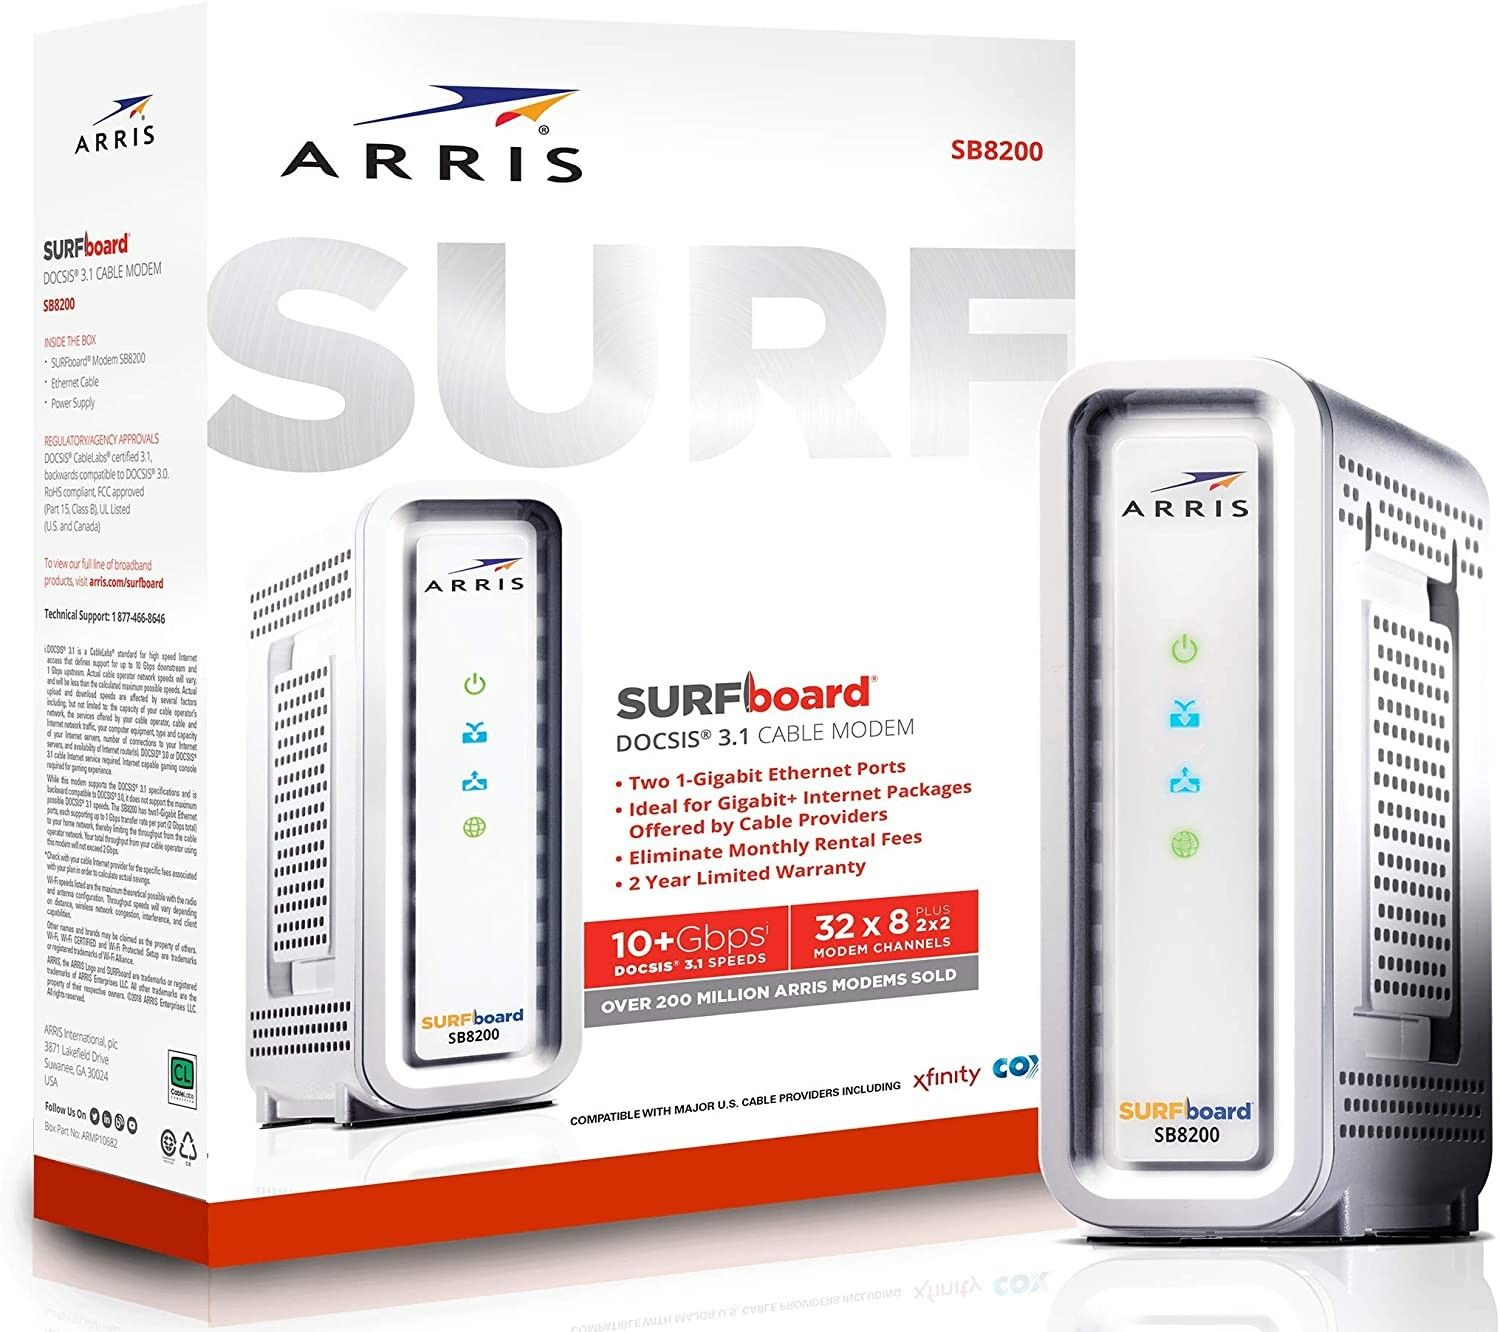 ARRIS SURFboard SB8200 DOCSIS 3.1 Gigabit Cable Modem in